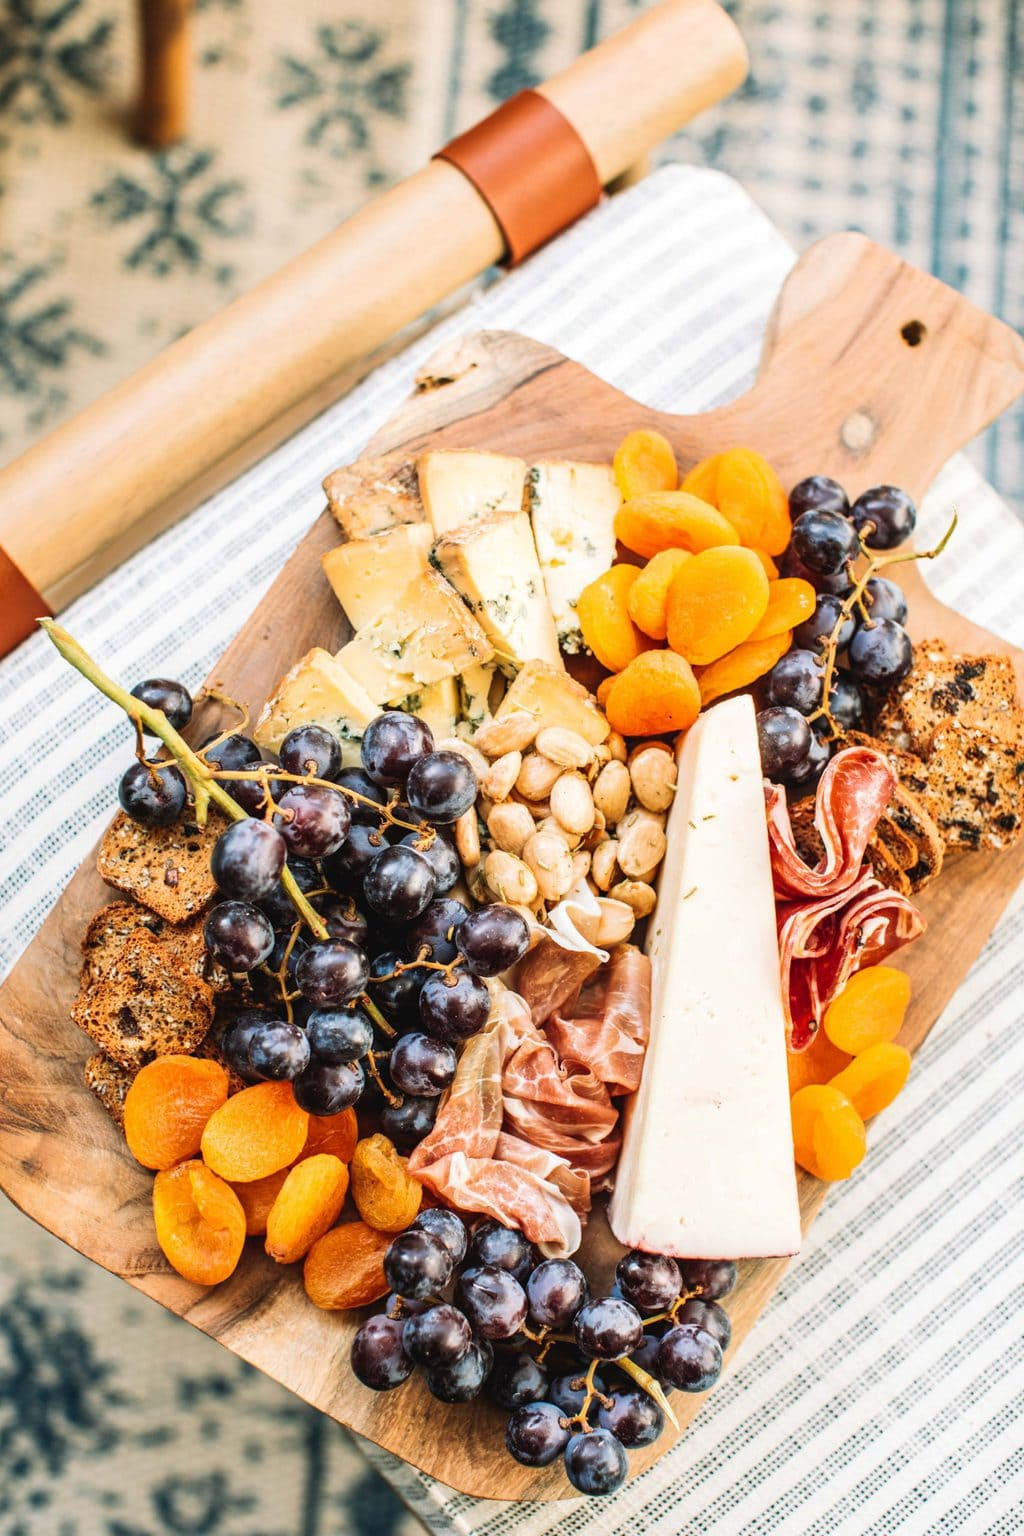 A cheeseboard on a wooden platter sitting on fabric foot stool.